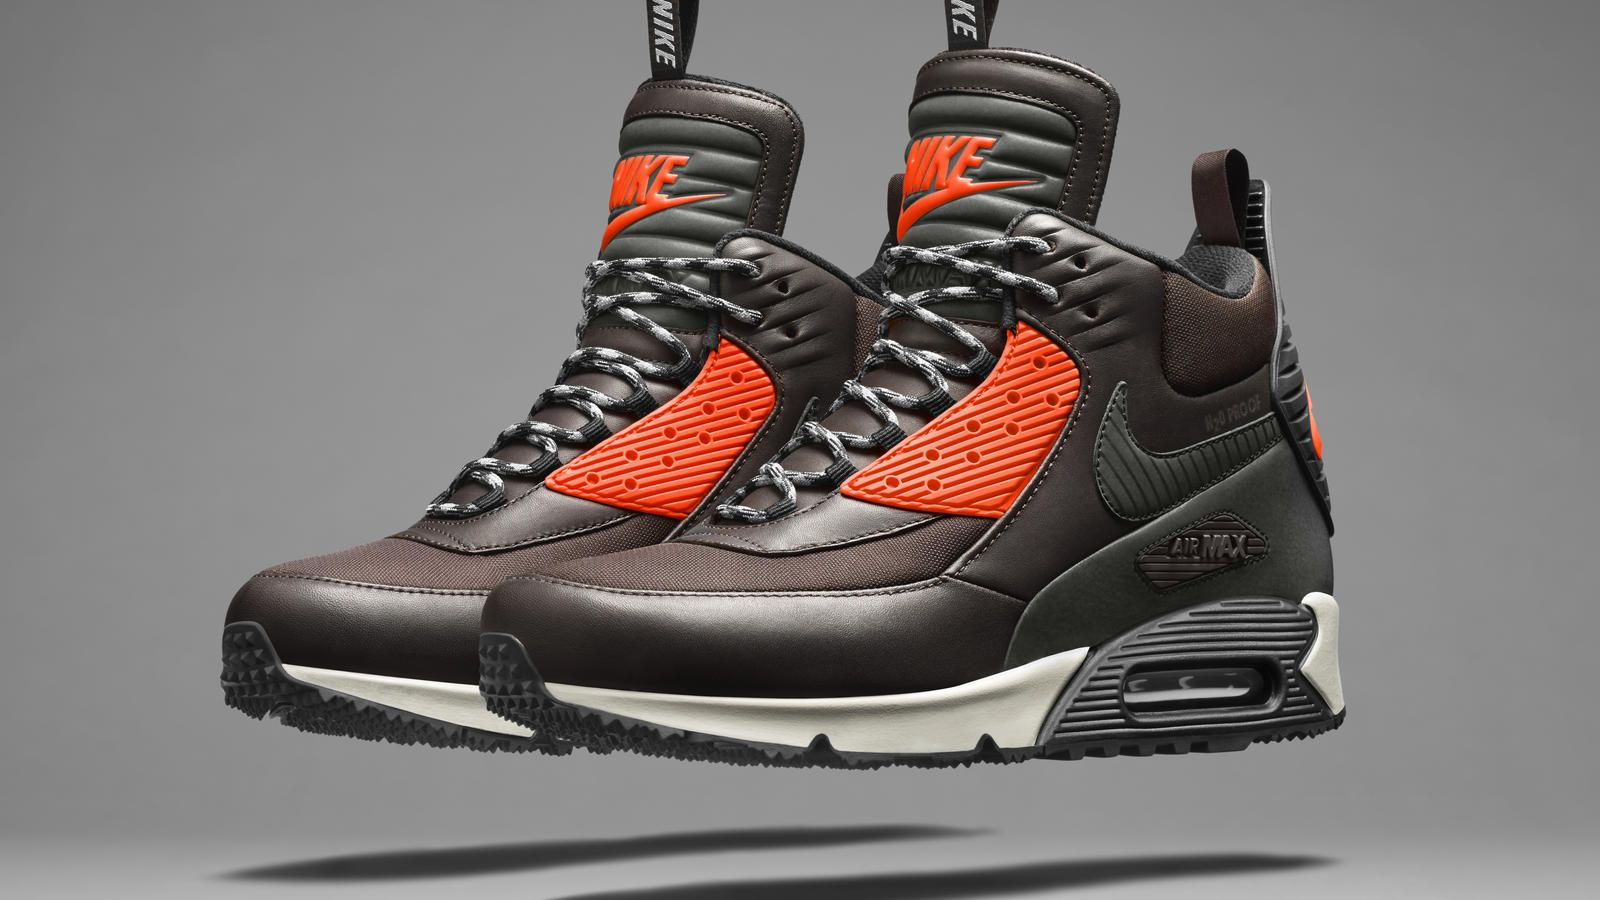 reputable site c6a2d e66f4 NIKE, Inc. - Bad Weather Gets Stomped  The Nike SneakerBoot Collection - Nike  Air Max 90 SneakerBoot.